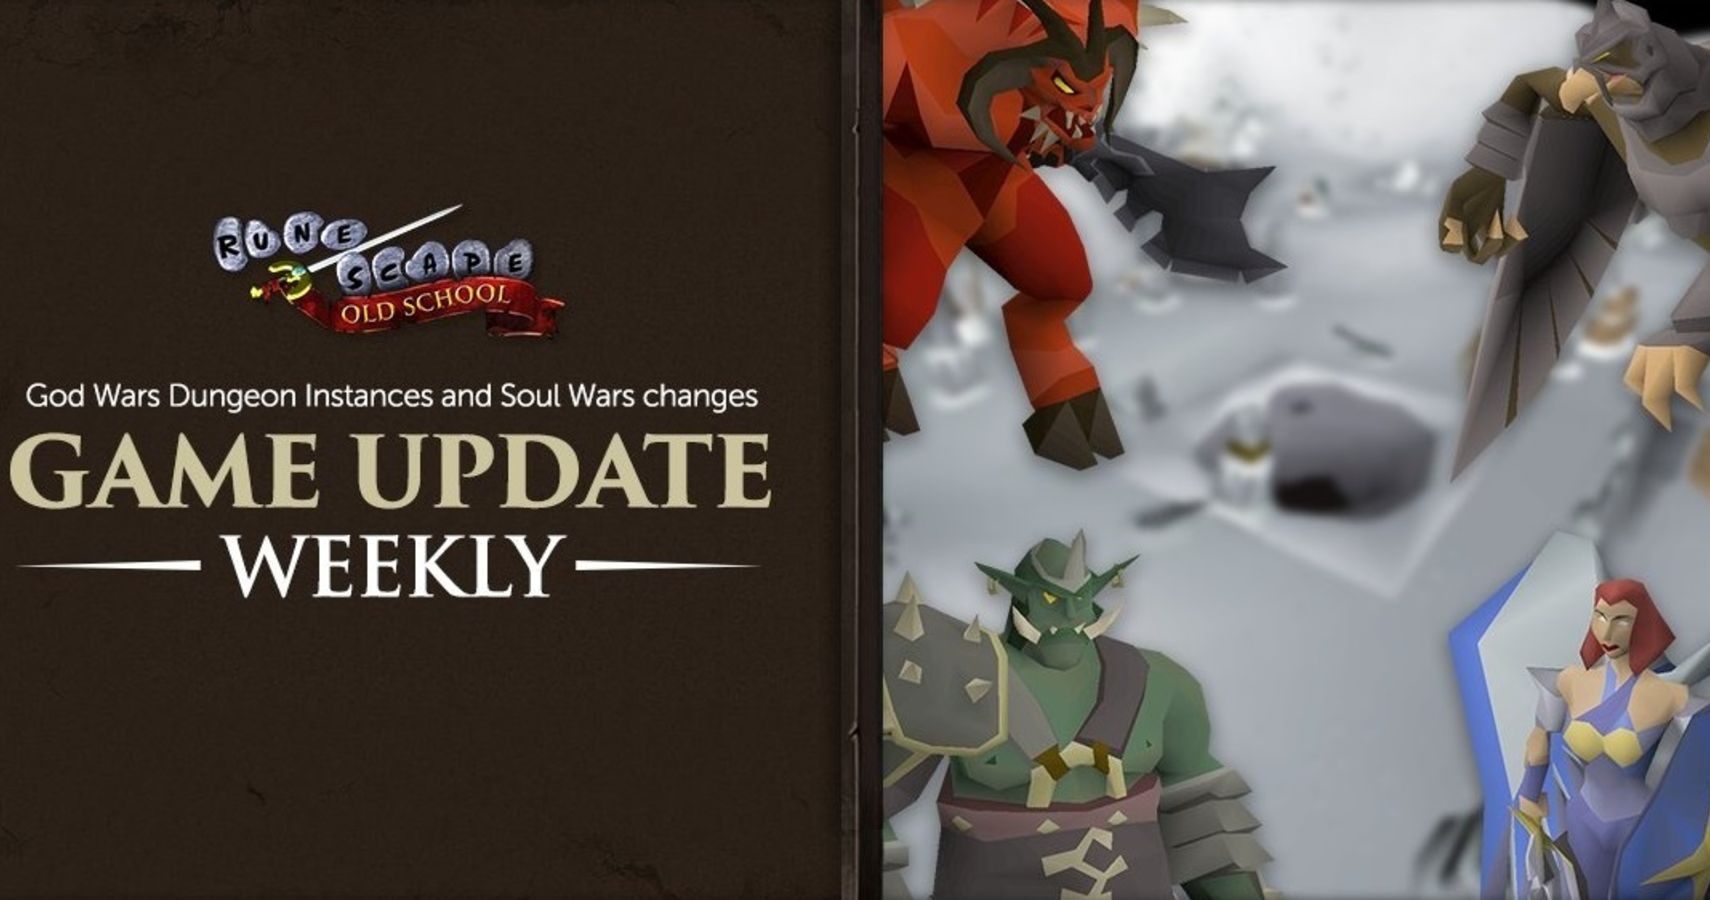 Old School RuneScape Updates God Wars Dungeon and Soul Wars